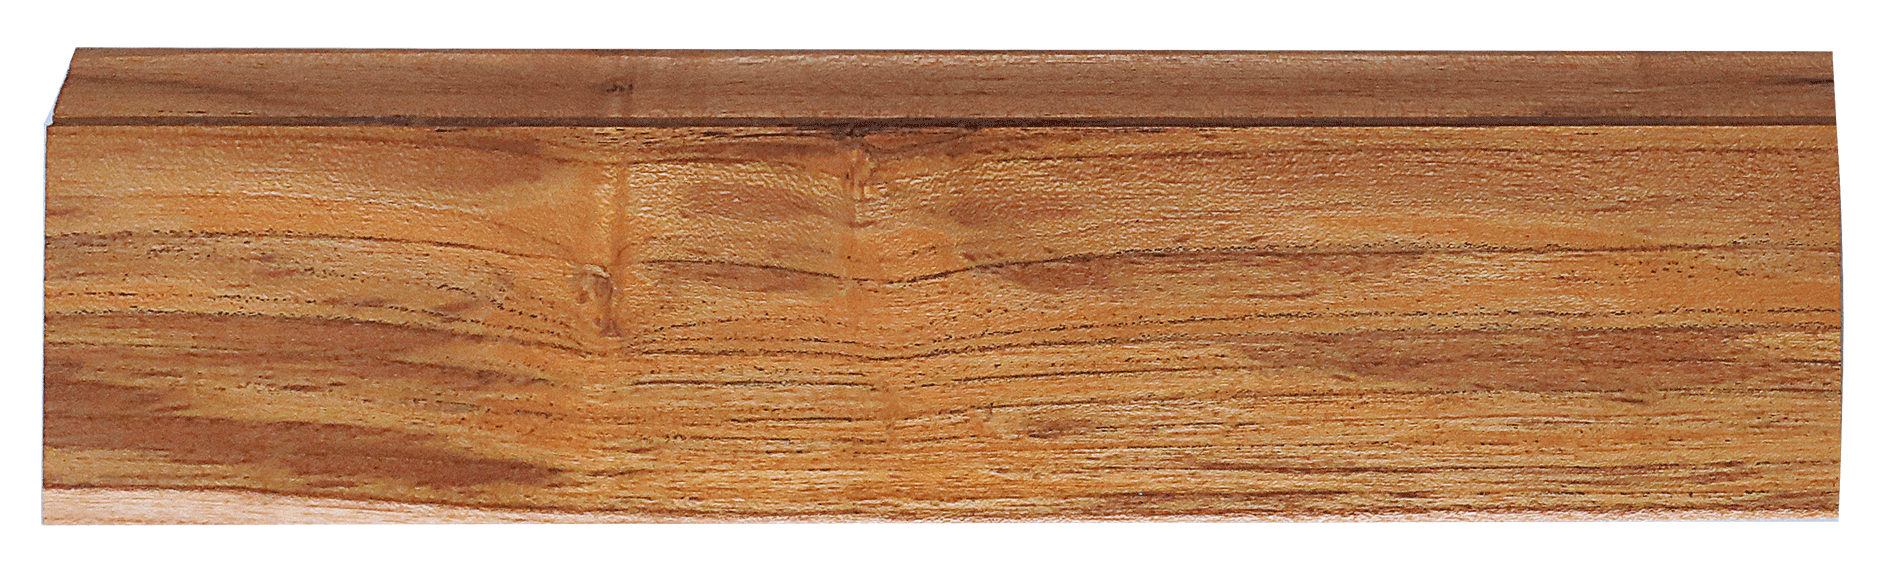 How To Identify Hardwoods And Softwoods